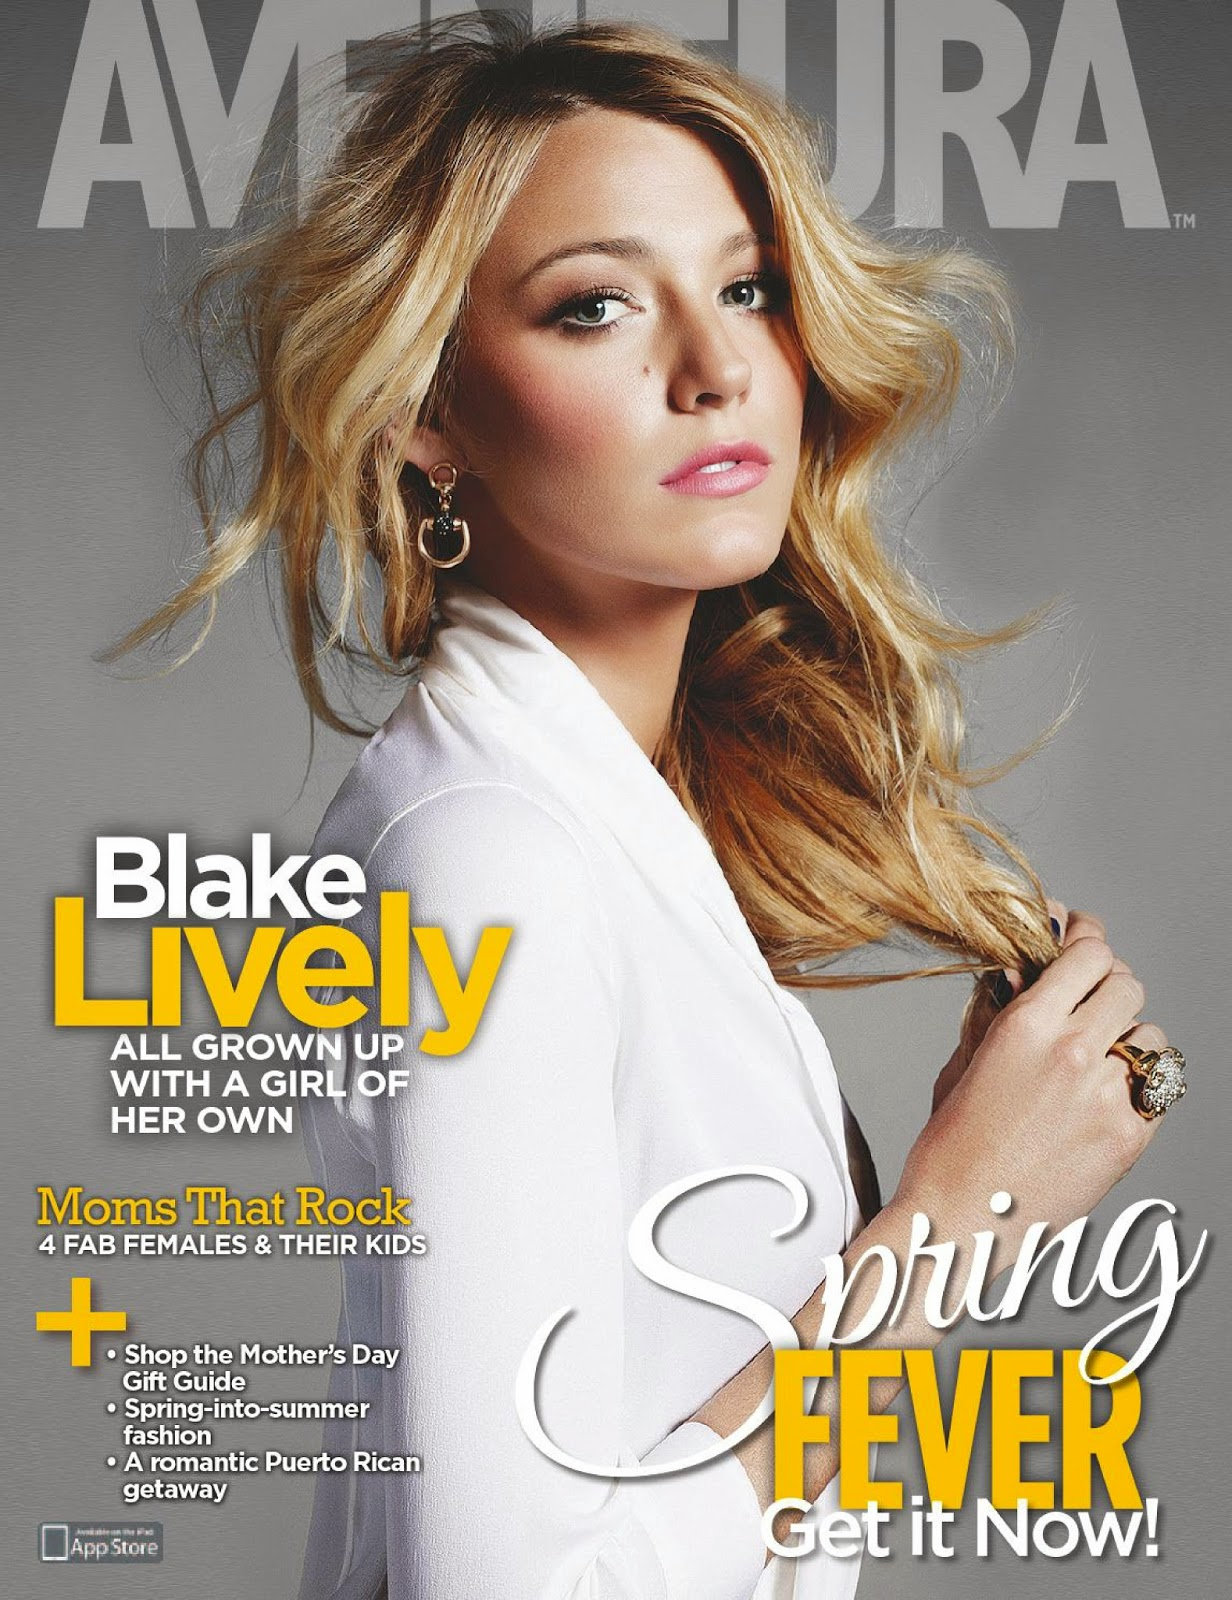 Actress @ Blake Lively - Aventura USA, April 2015